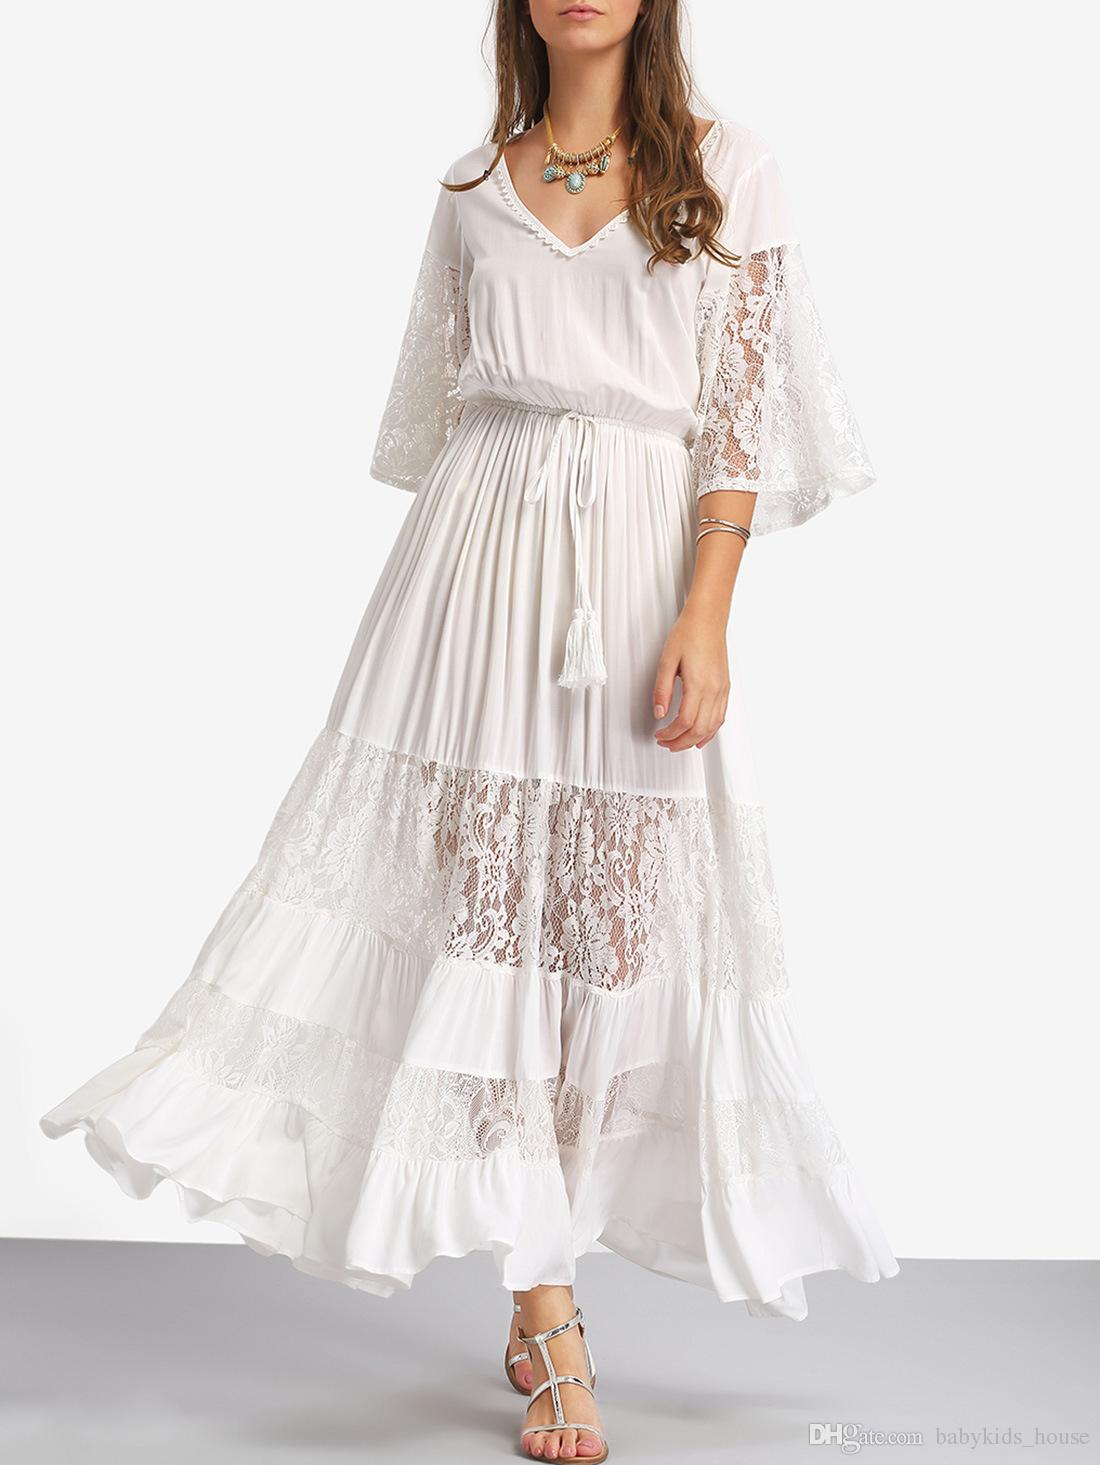 2018 new maternity dress for photo shooting neck white lace 2018 new maternity dress for photo shooting neck white lace chiifon dress baby photo graphy props short sleeve stretch pregnant dress from babykidshouse ombrellifo Choice Image